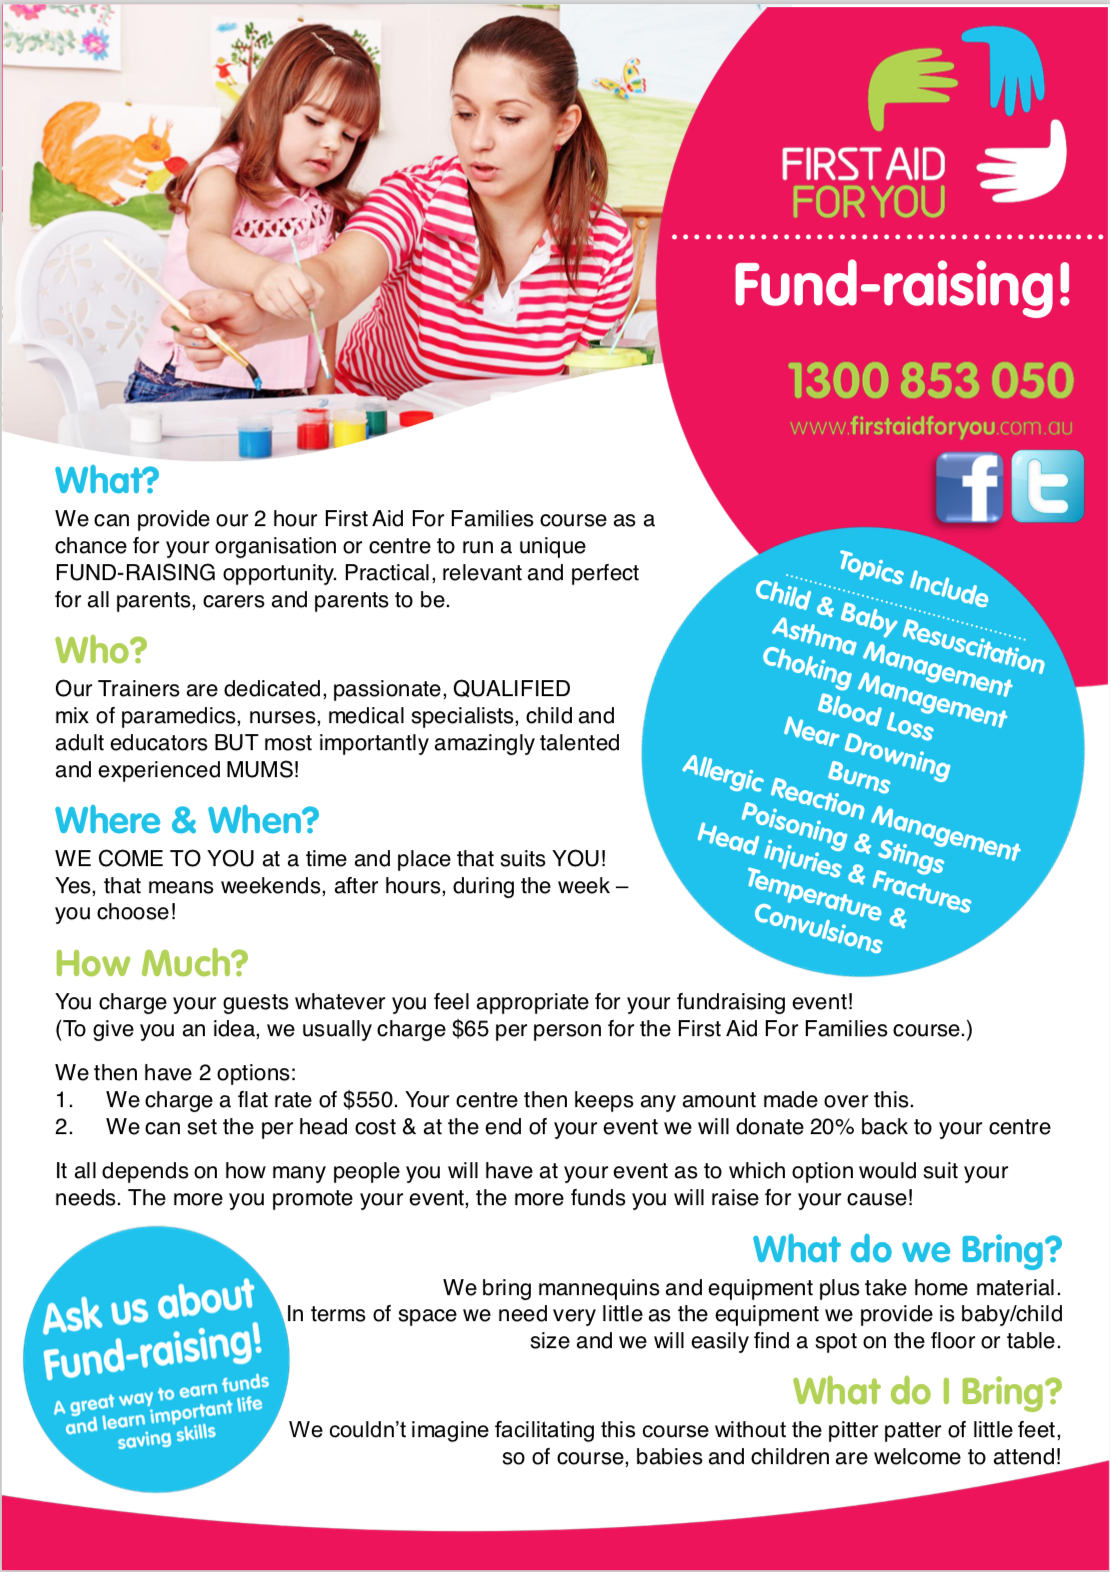 Image of the First Aid For You Fundraising Fact Sheet